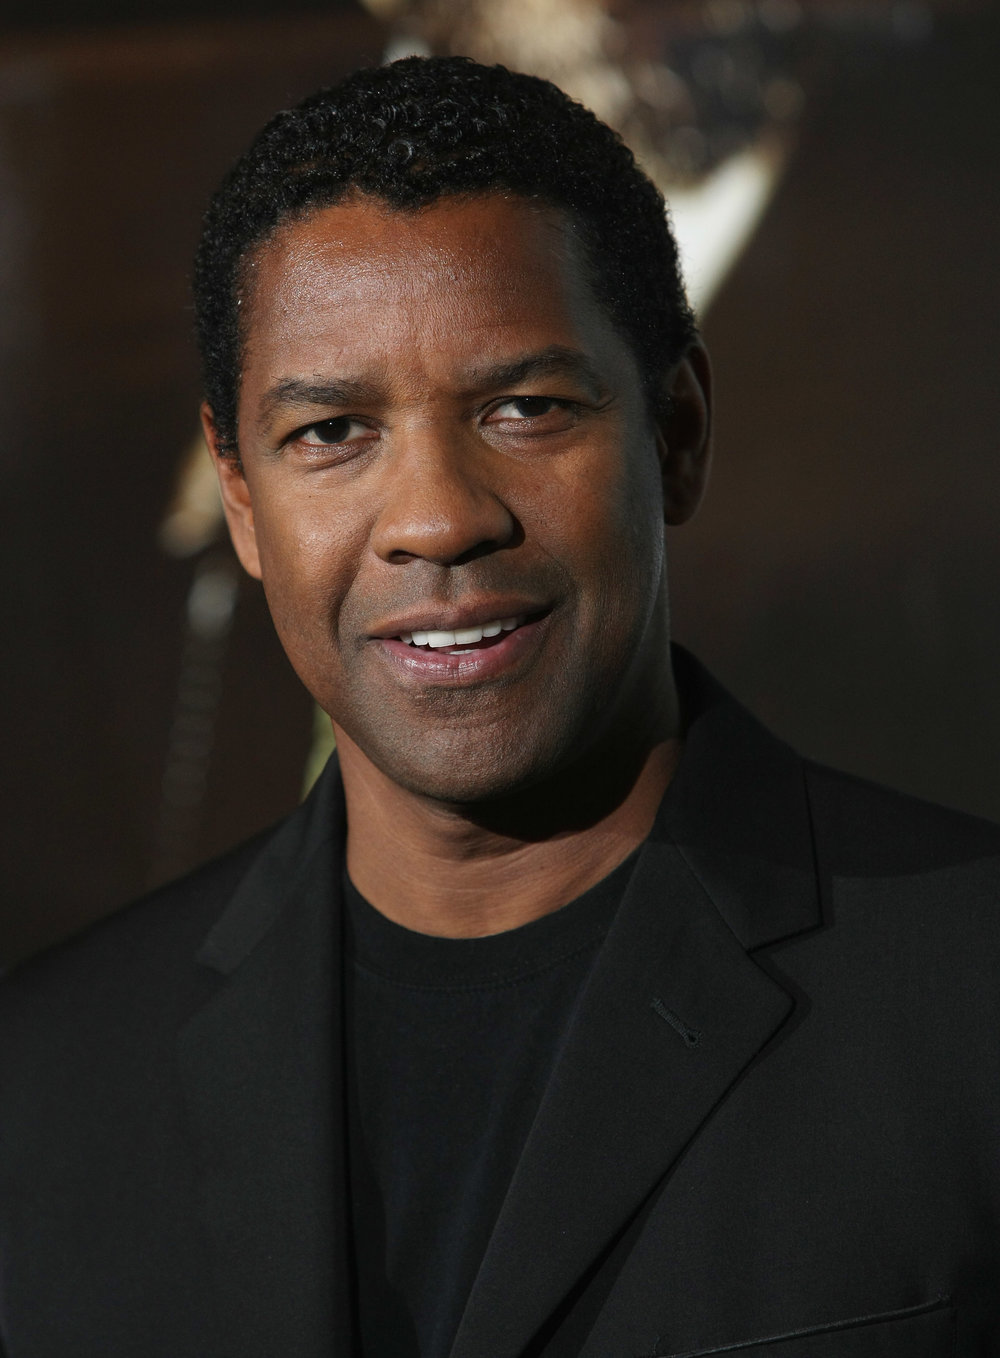 denzel washington.jpg